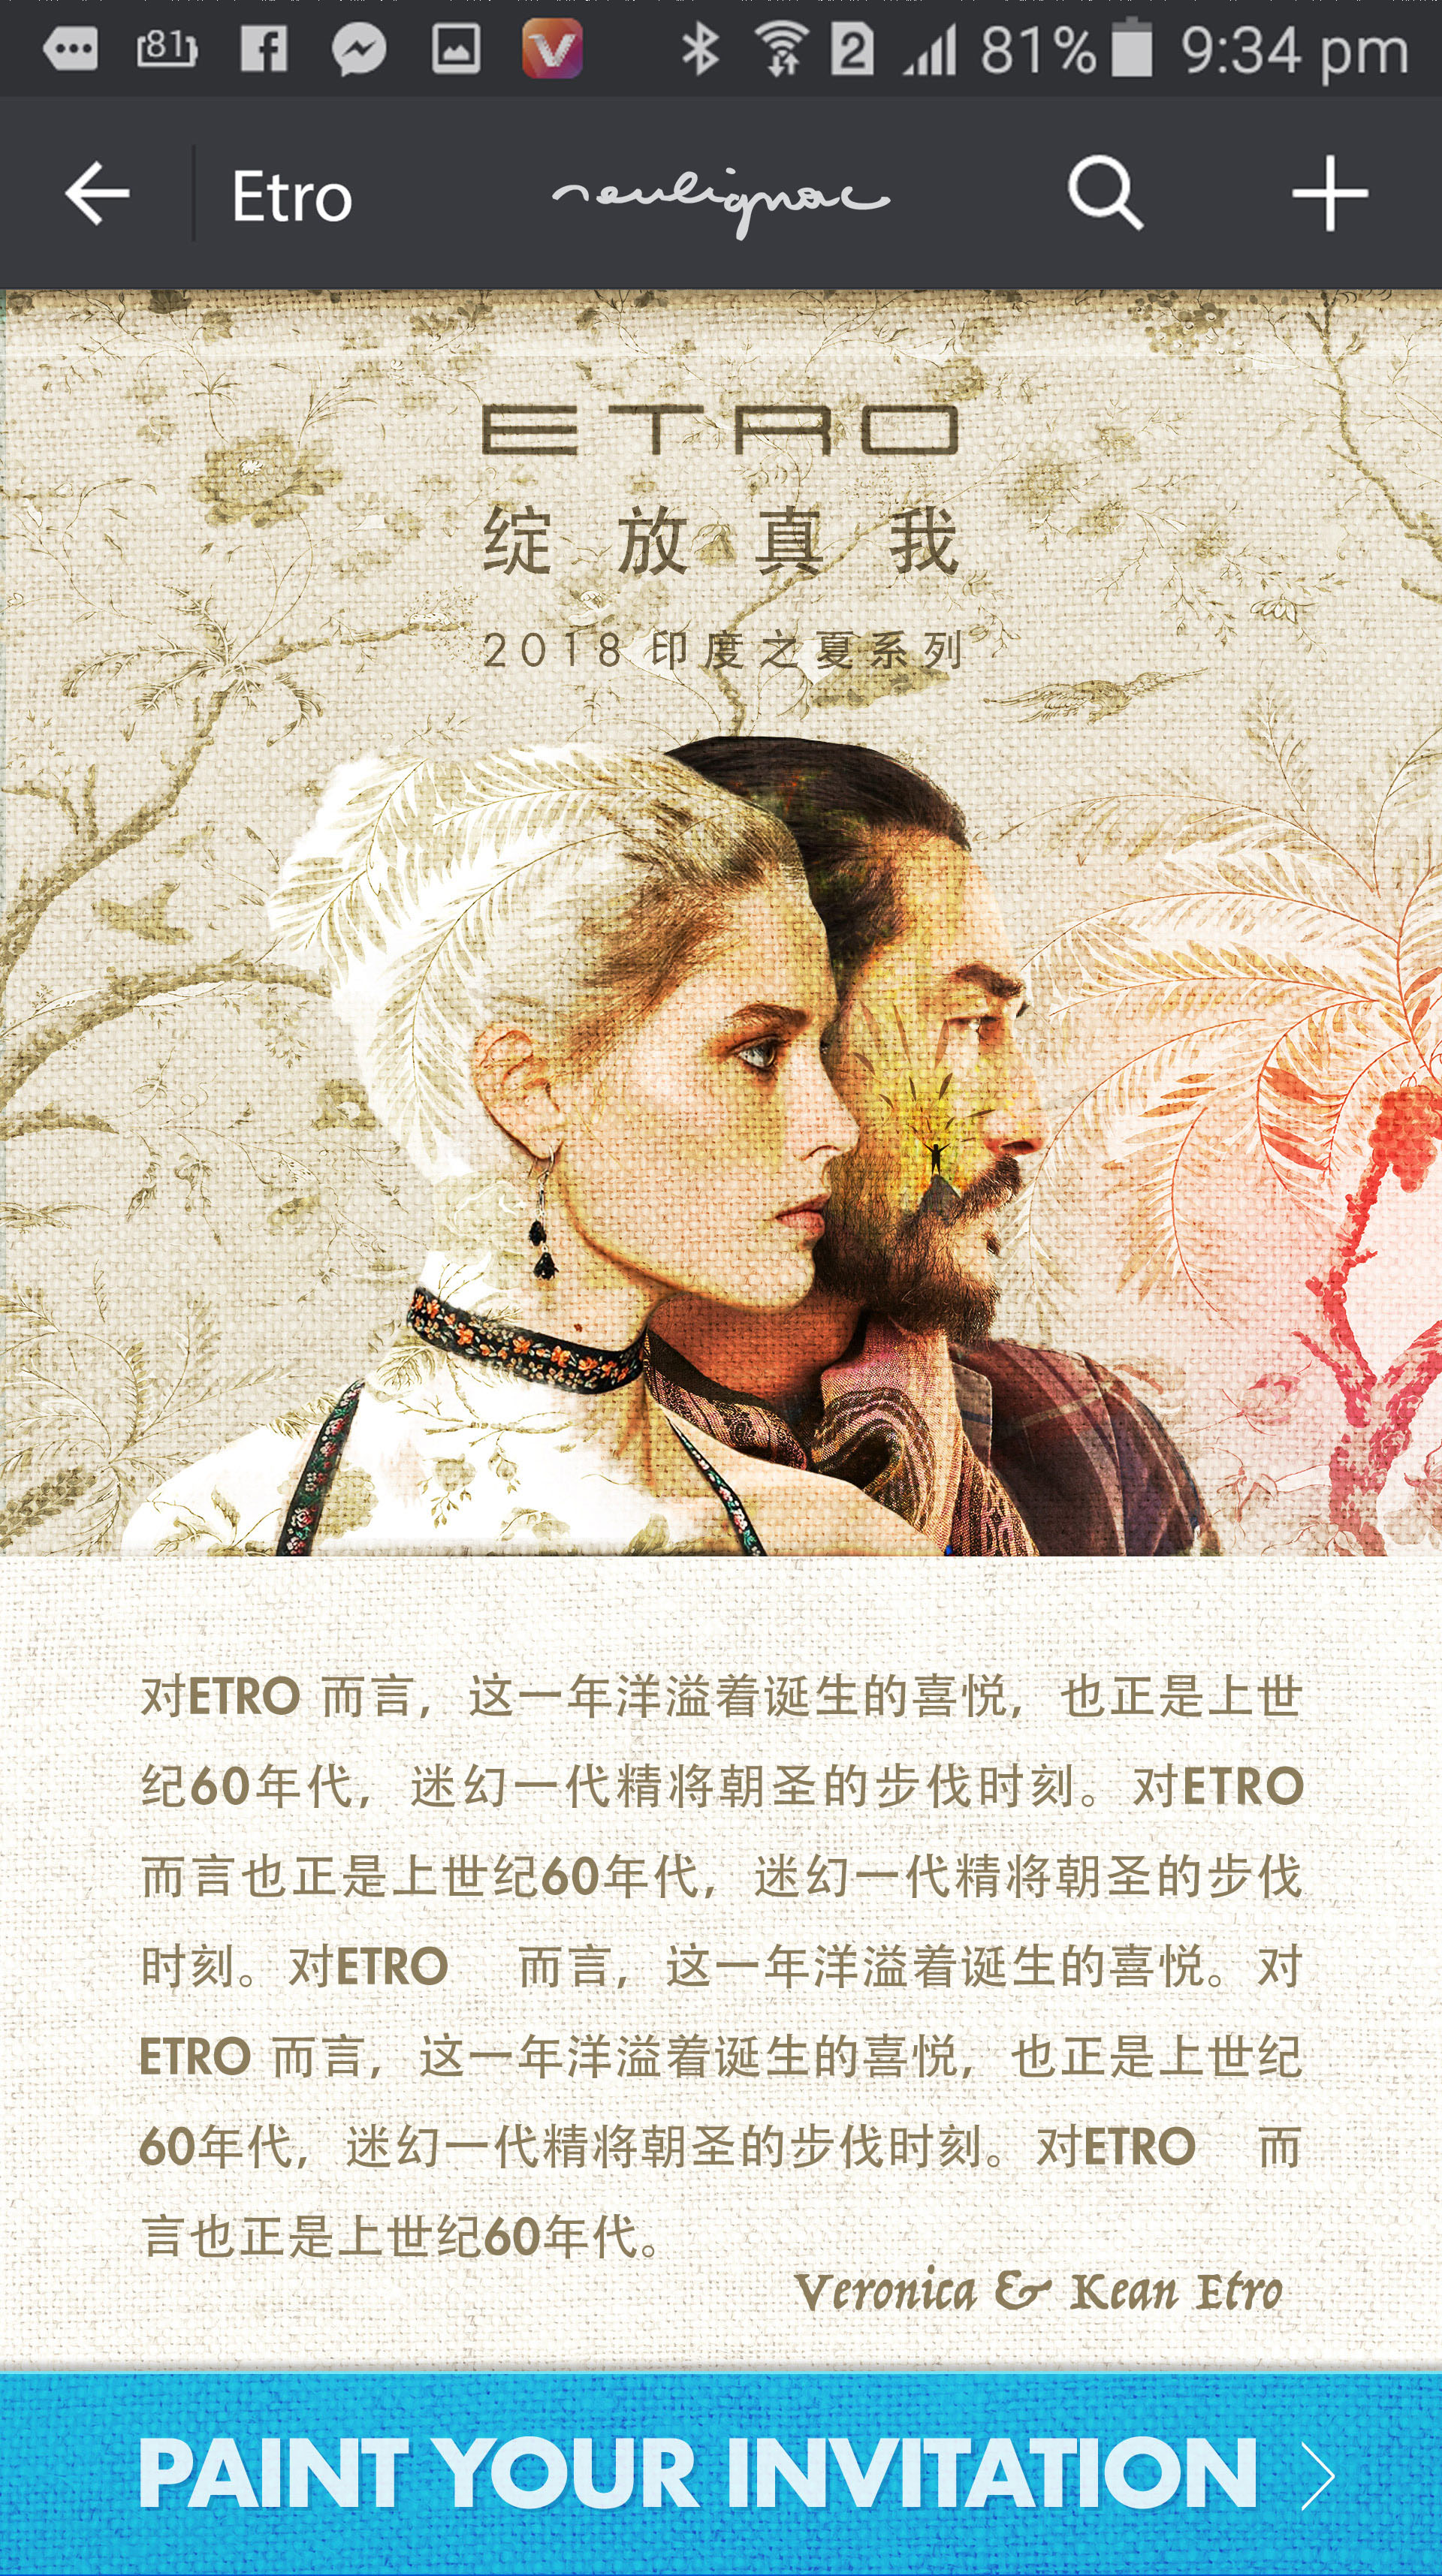 Etro China - Digital Summer Campaign, WeChat minisite - Francois Soulignac - Digital Creative & Art Direction - Labbrand Madjor Shanghai, China